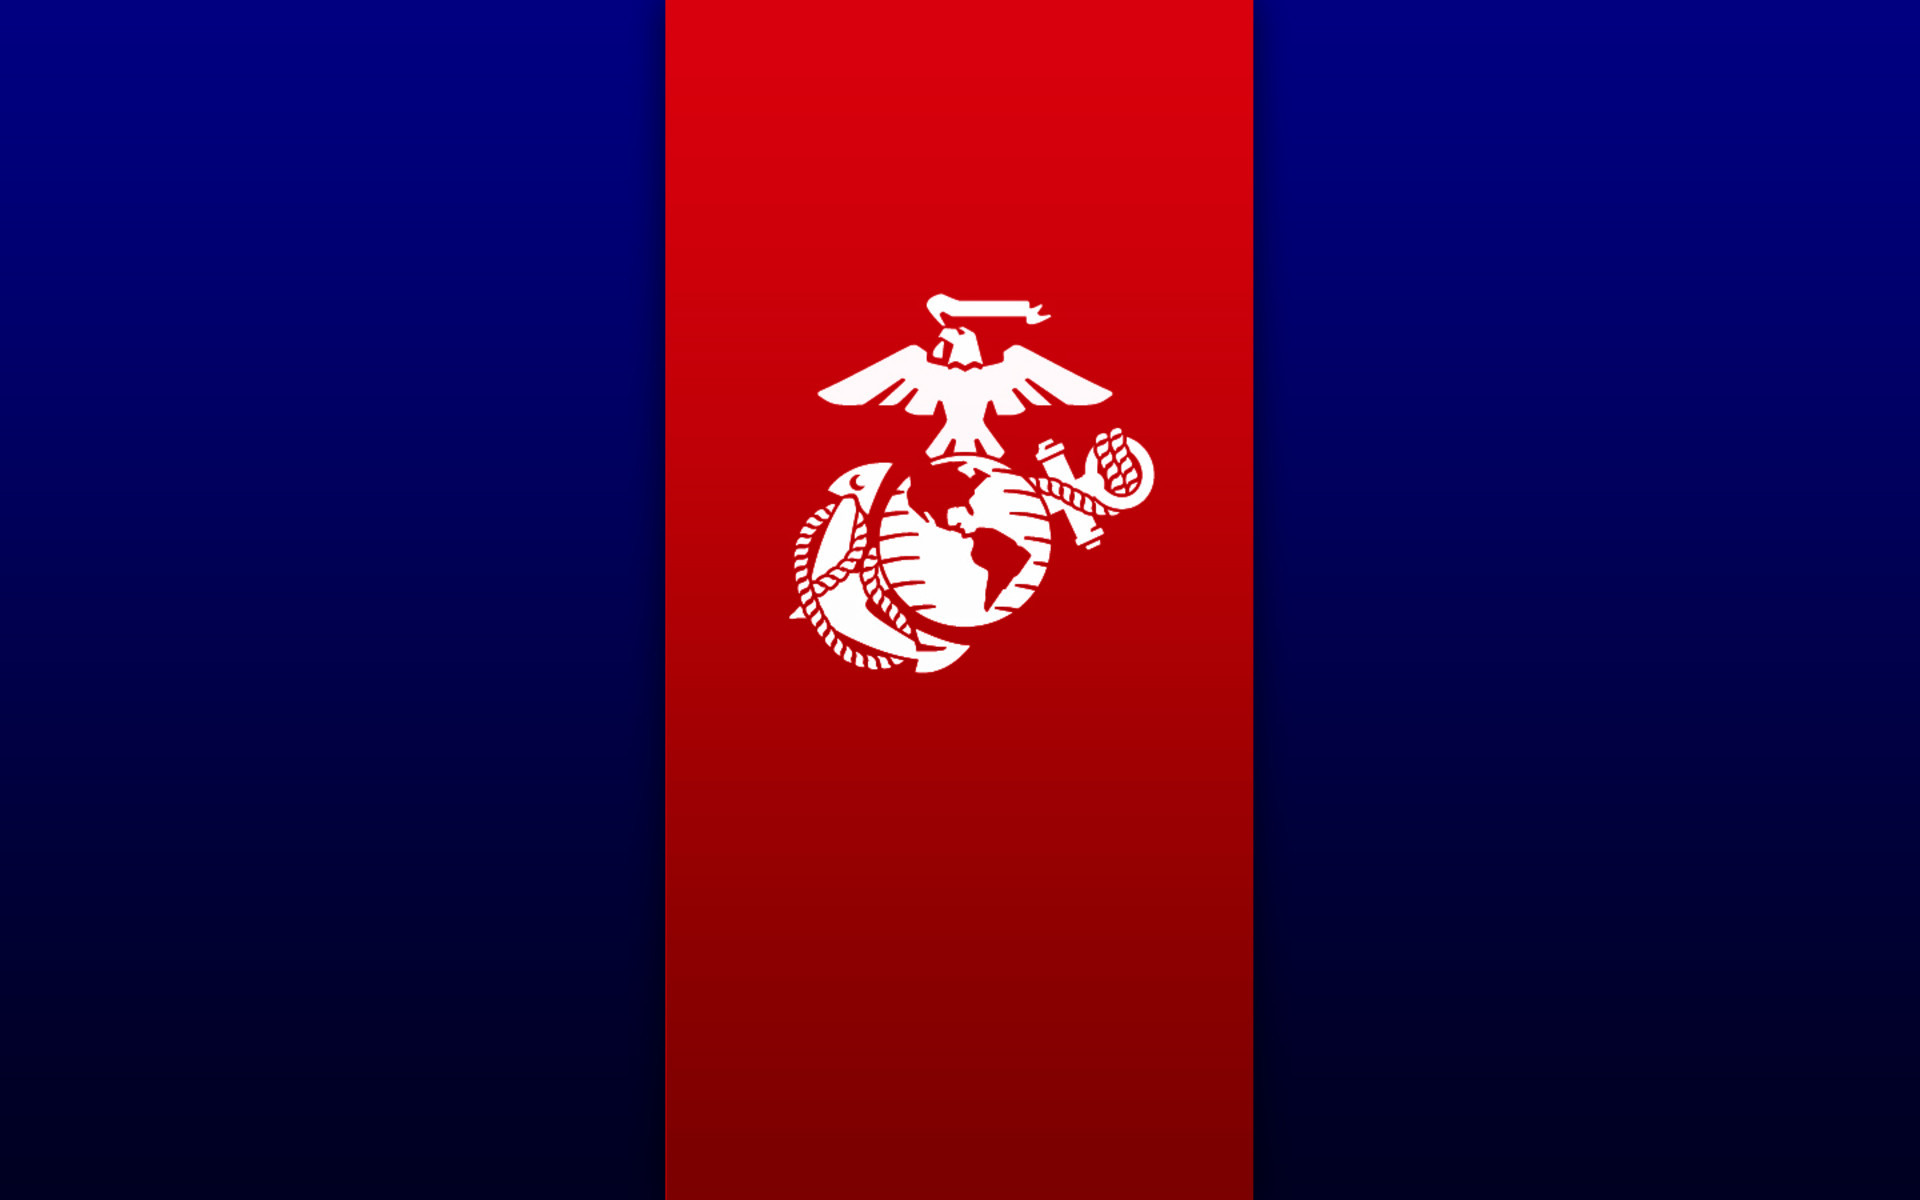 1920x1200  1920x1440 px hd desktop wallpaper wallpapers usmc red and blue  background